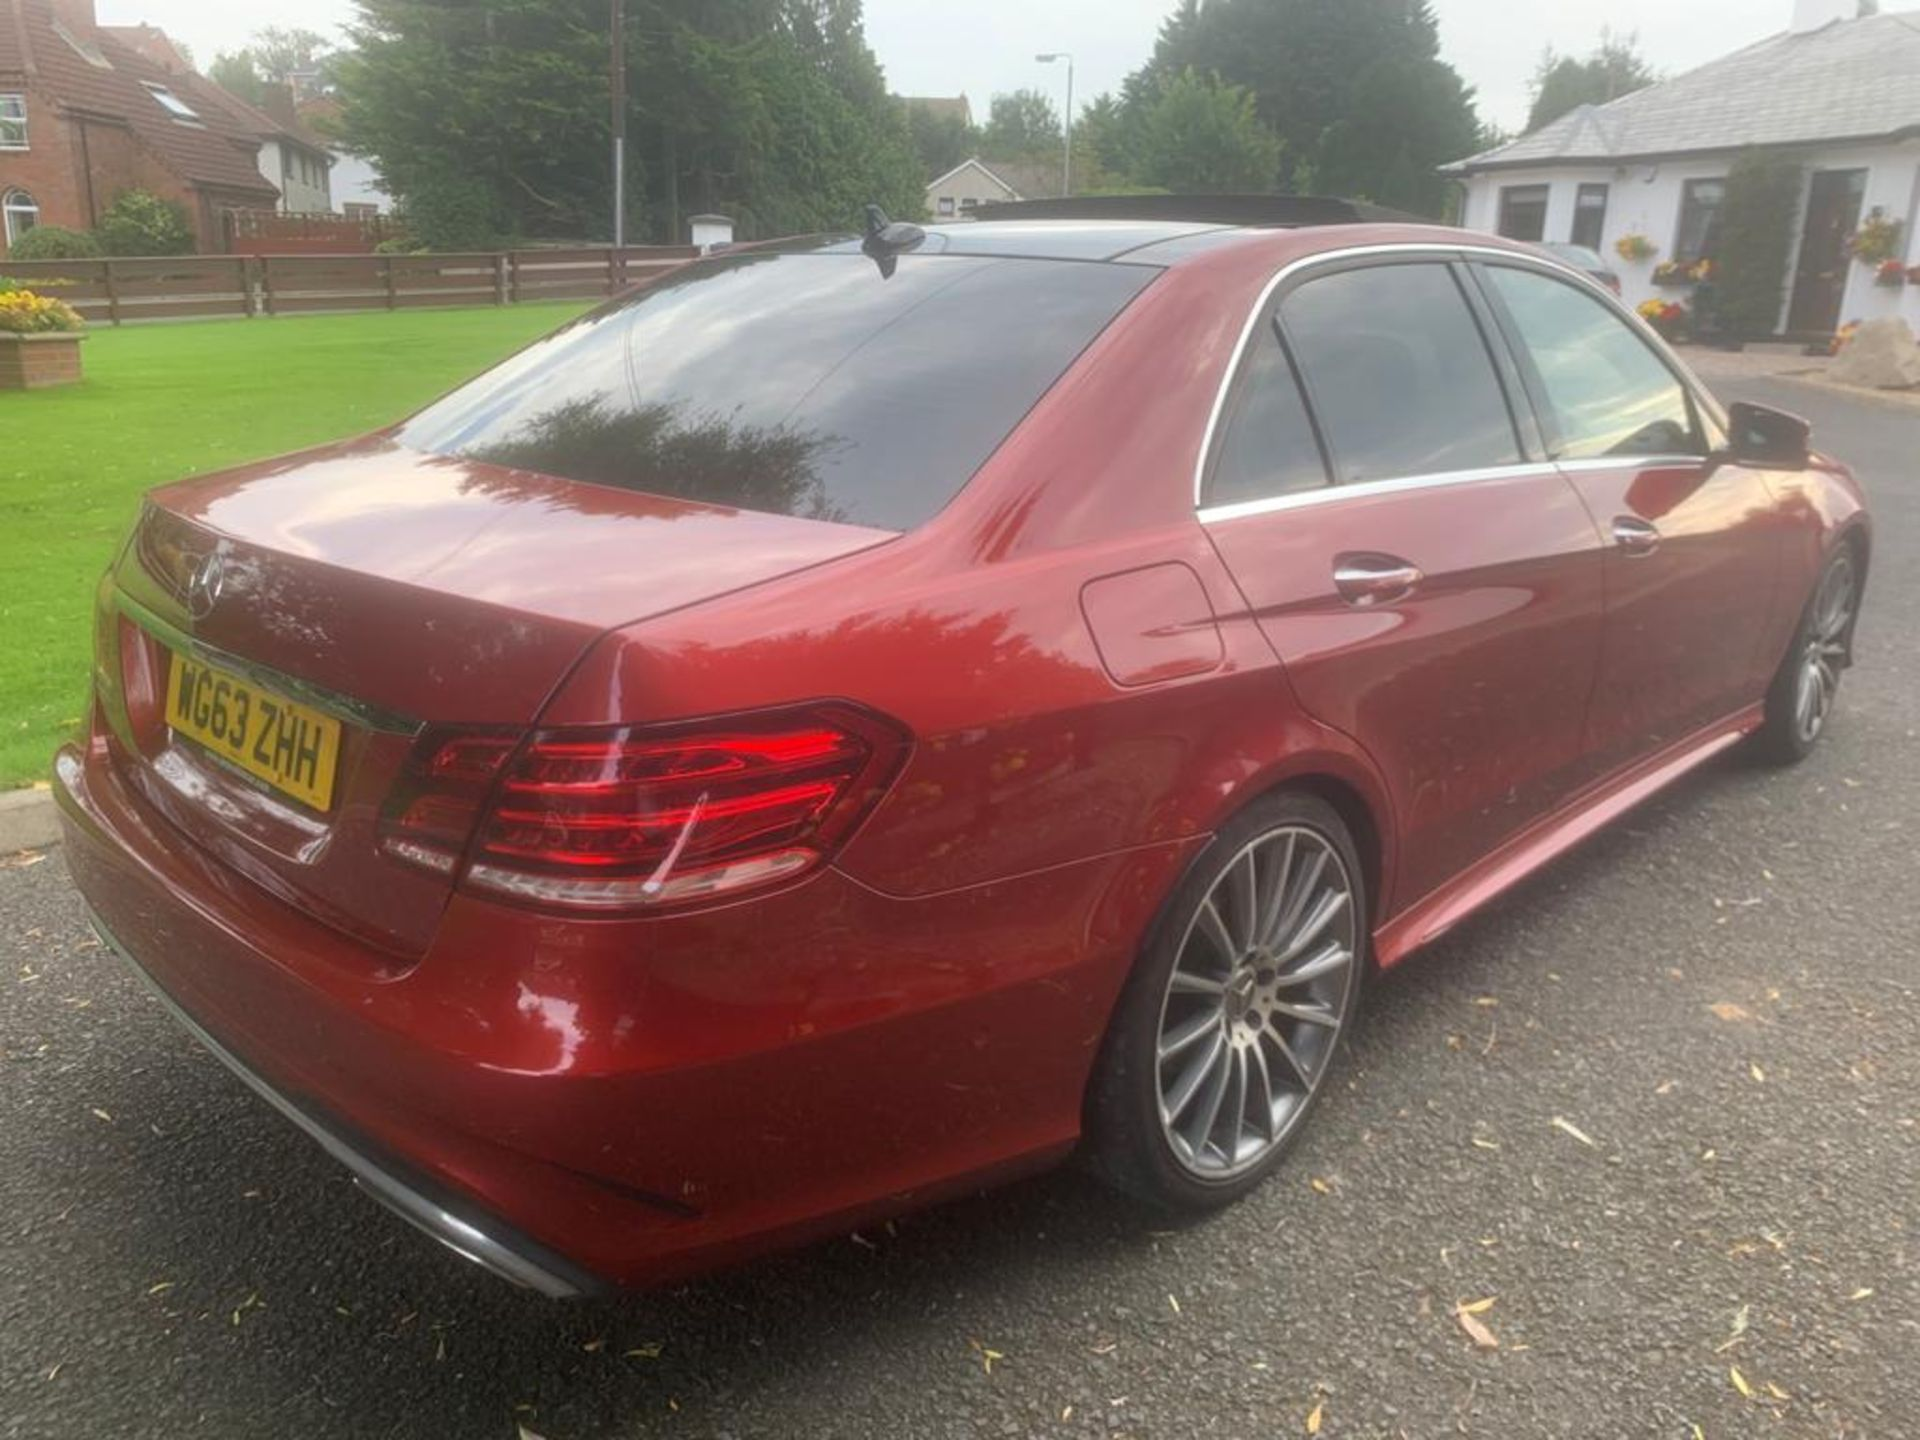 2014/63 REG MERCEDES-BENZ E300 AMG SPORT BLUETEC HYBRID 2.2 ELECTRIC DIESEL RED 4 DOOR SALOON - Image 4 of 15